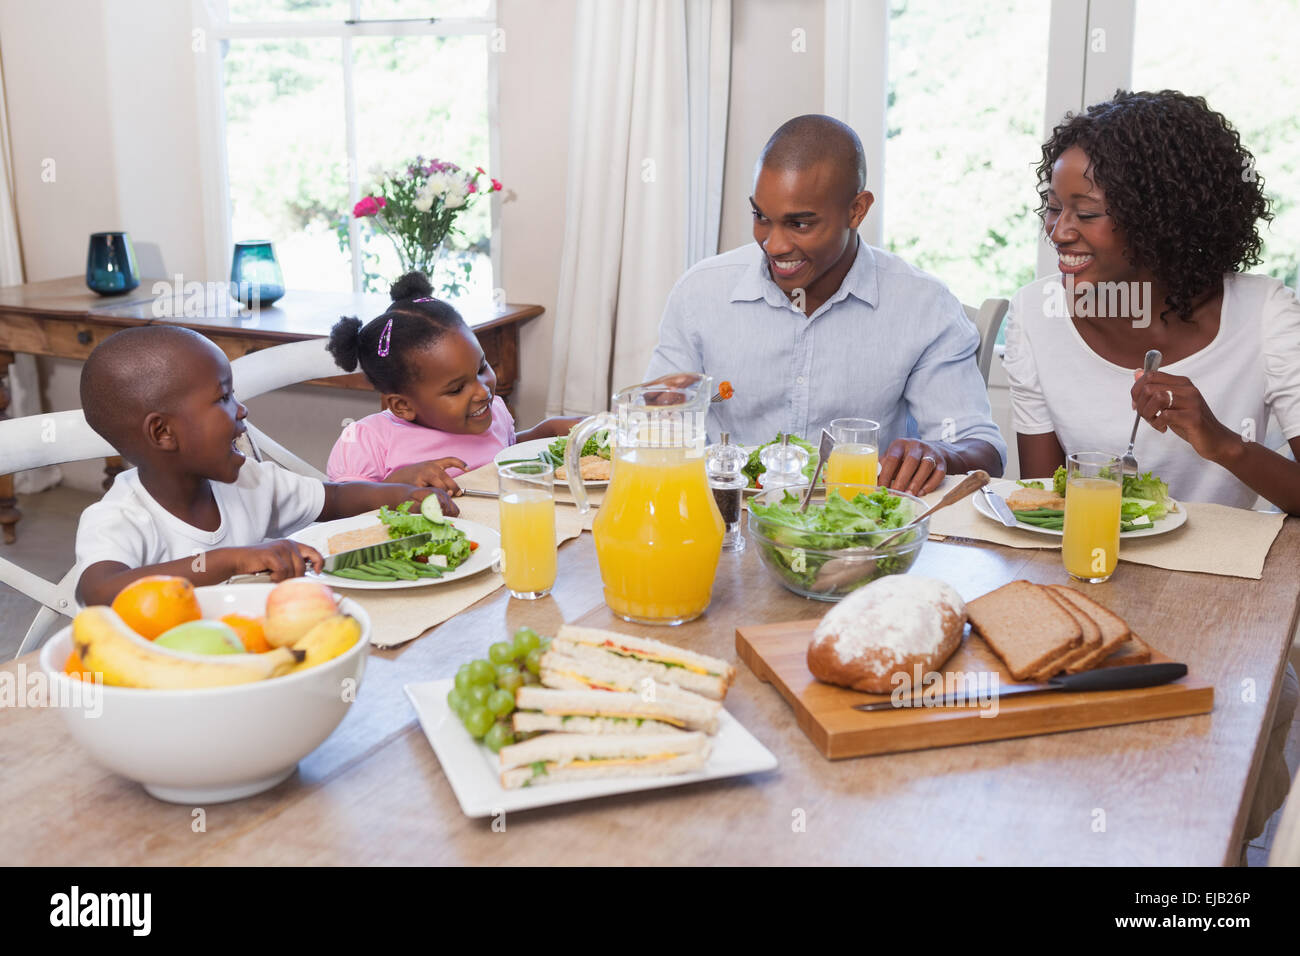 Happy family having lunch together - Stock Image